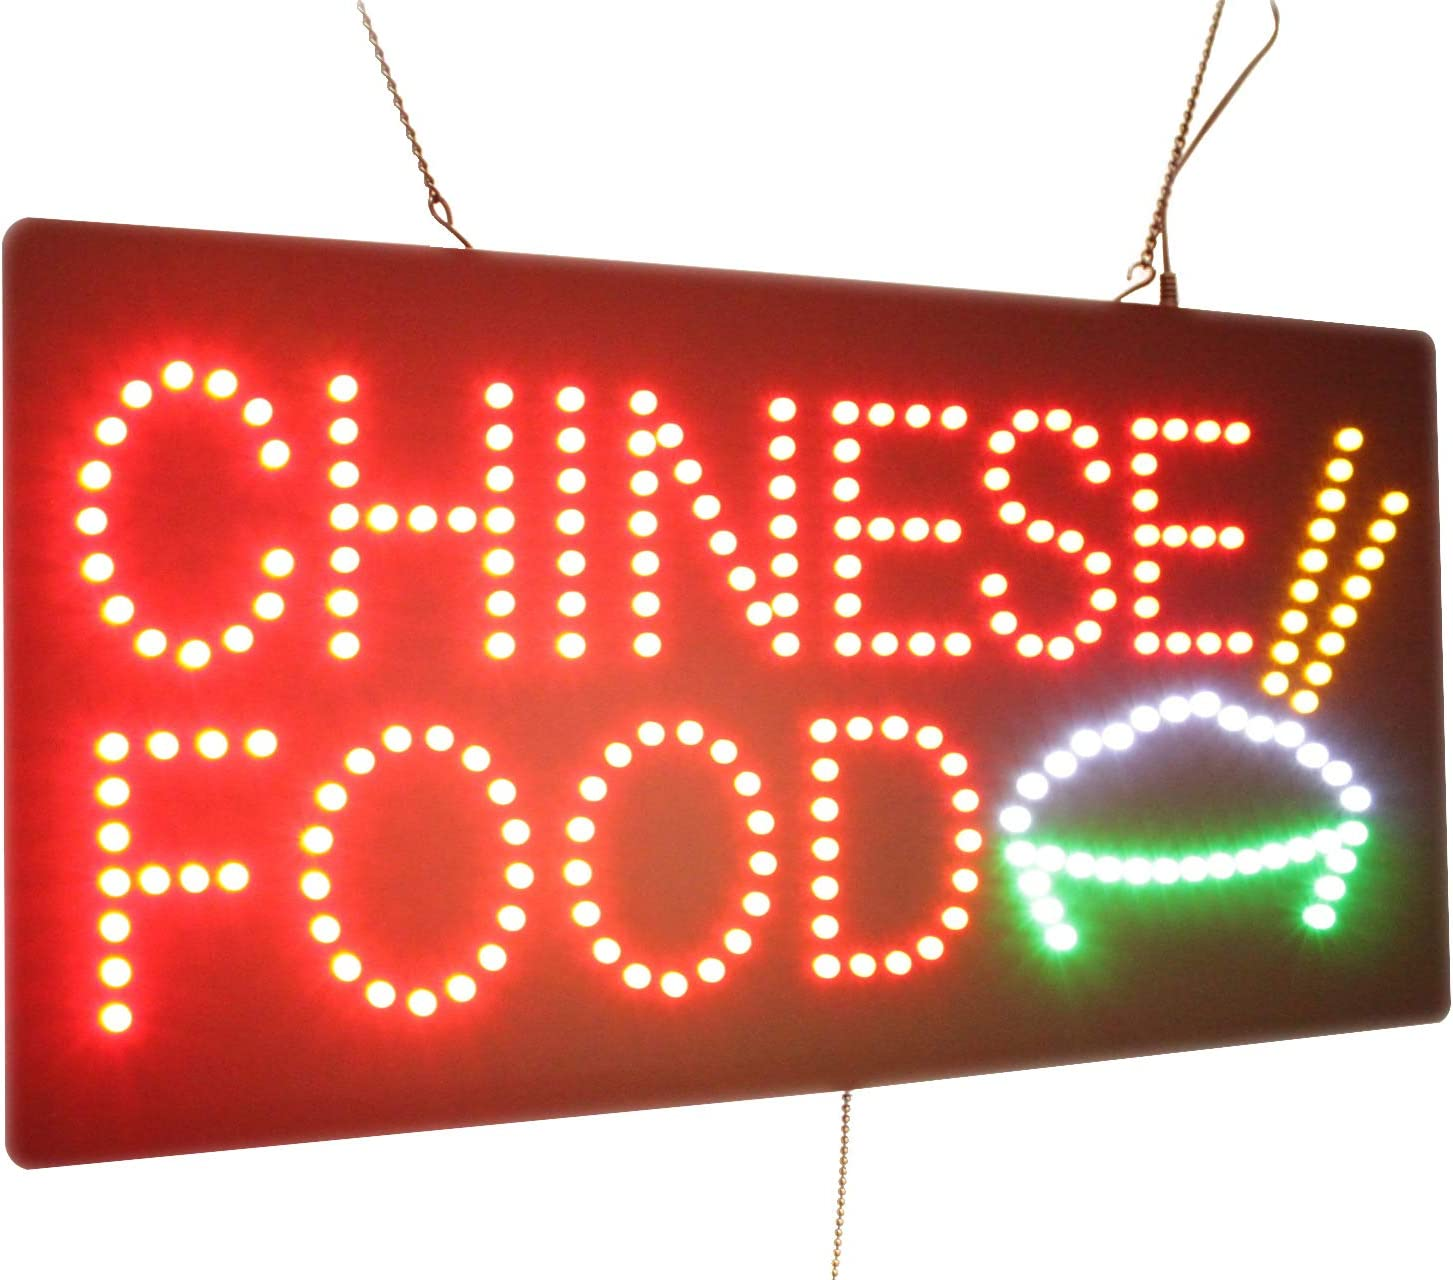 Chinese Food Sign, TOPKING Signage, LED Neon Open, Store, Window, Shop, Business, Display, Grand Opening Gift